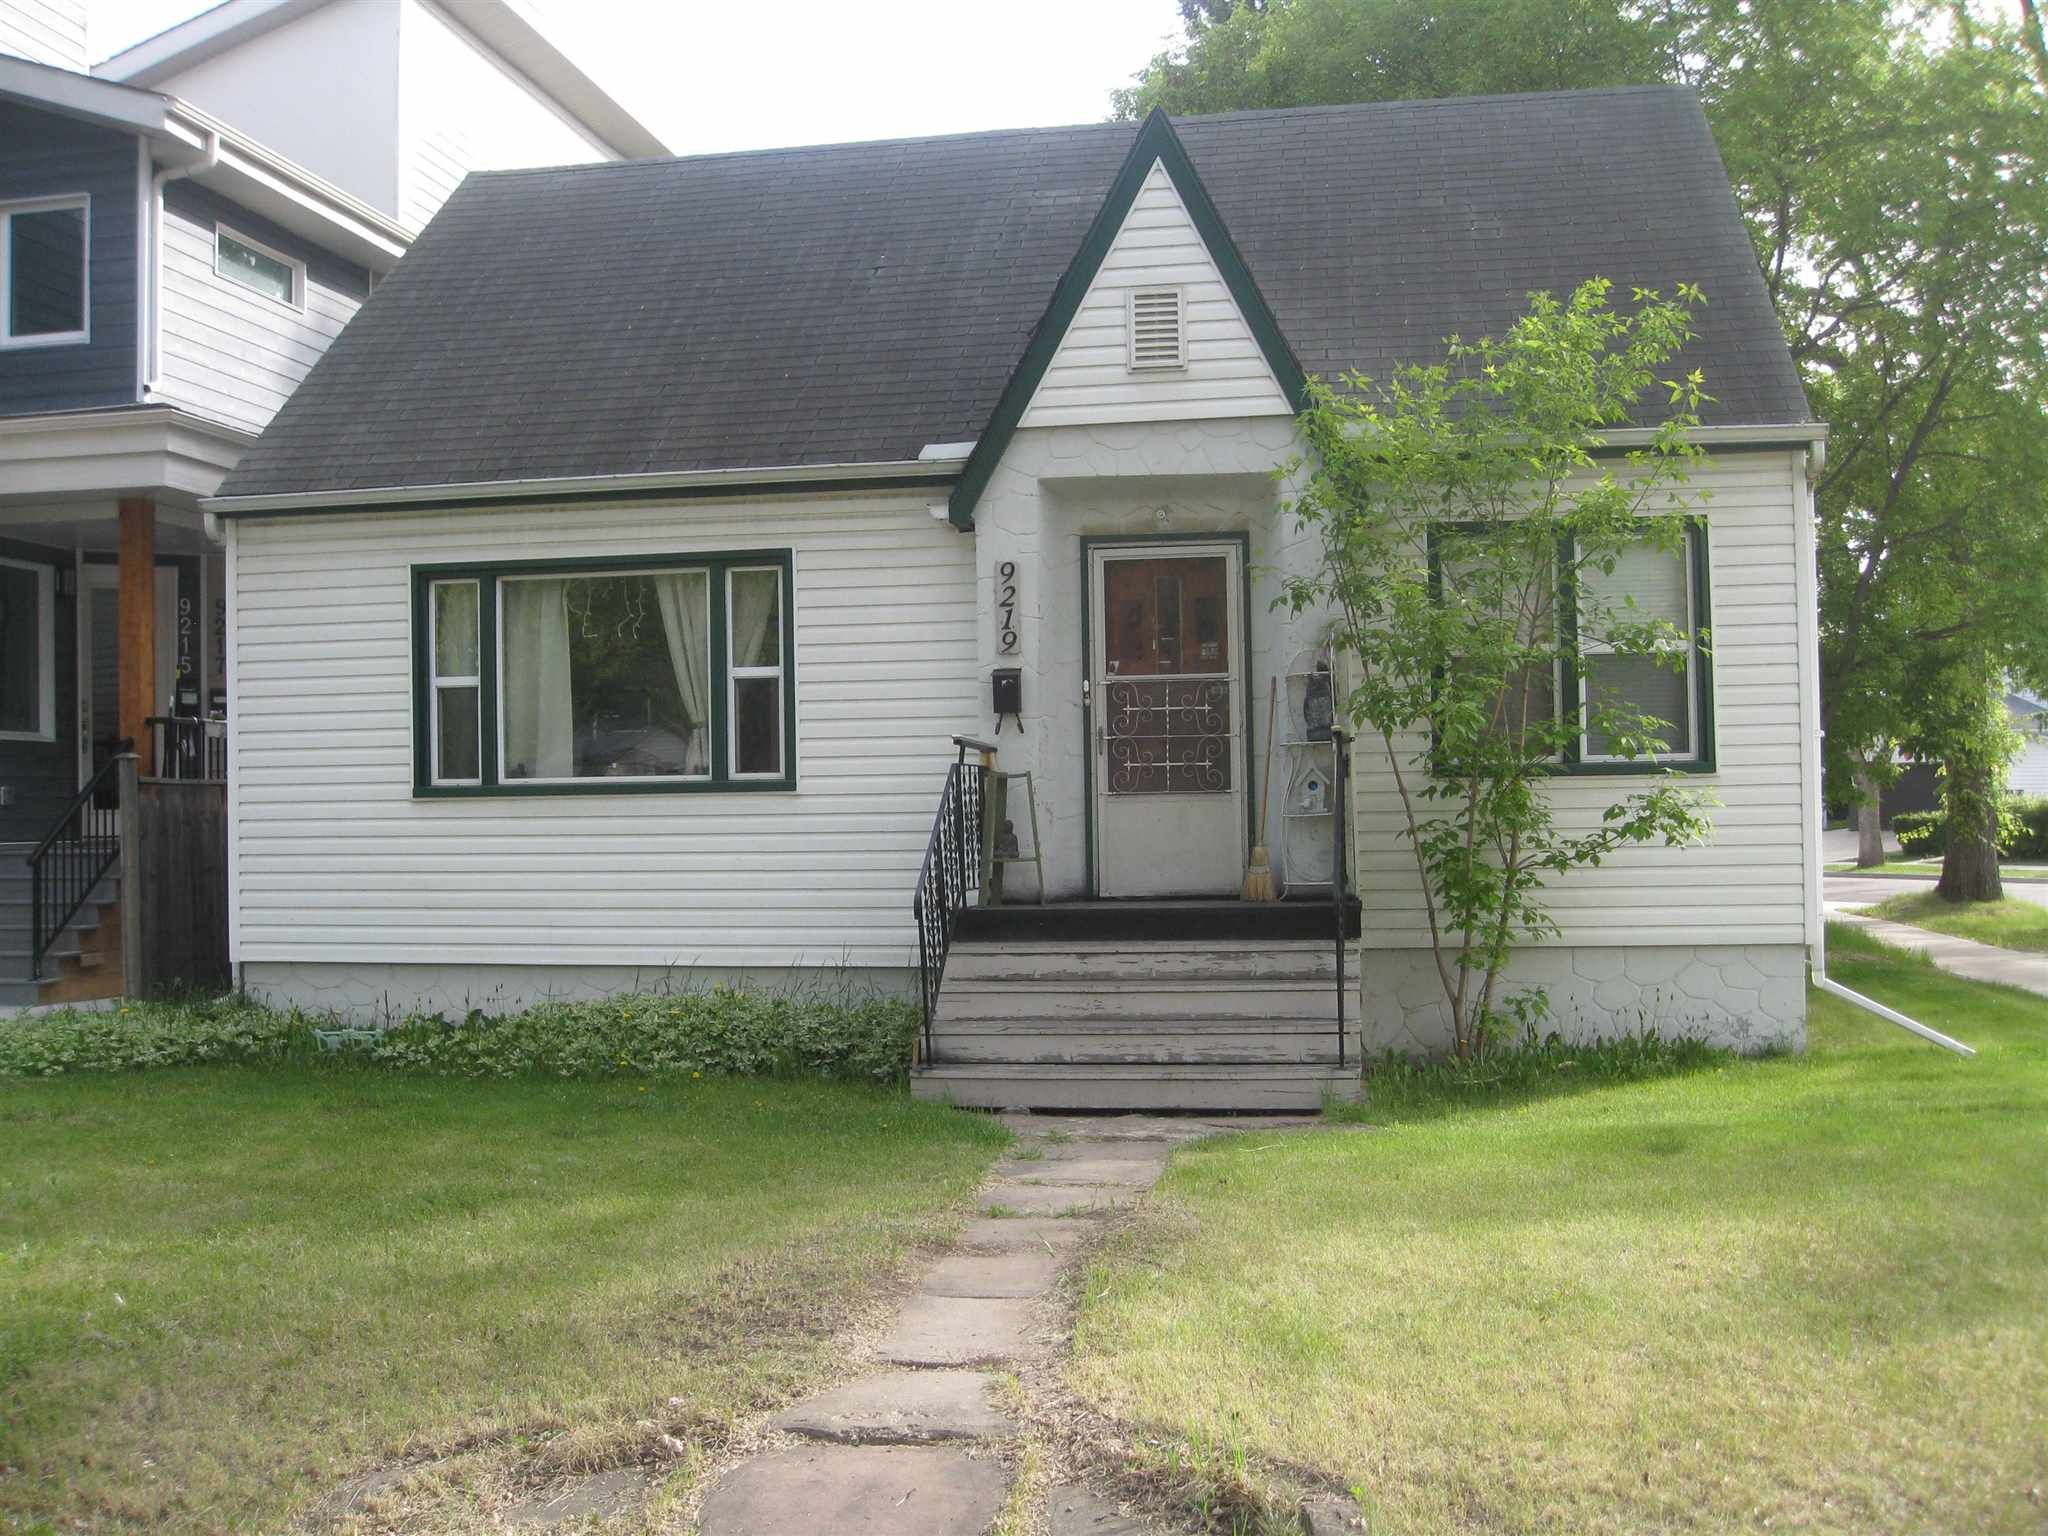 Main Photo: 9219 Connors Road in Edmonton: Zone 18 House for sale : MLS®# E4262239